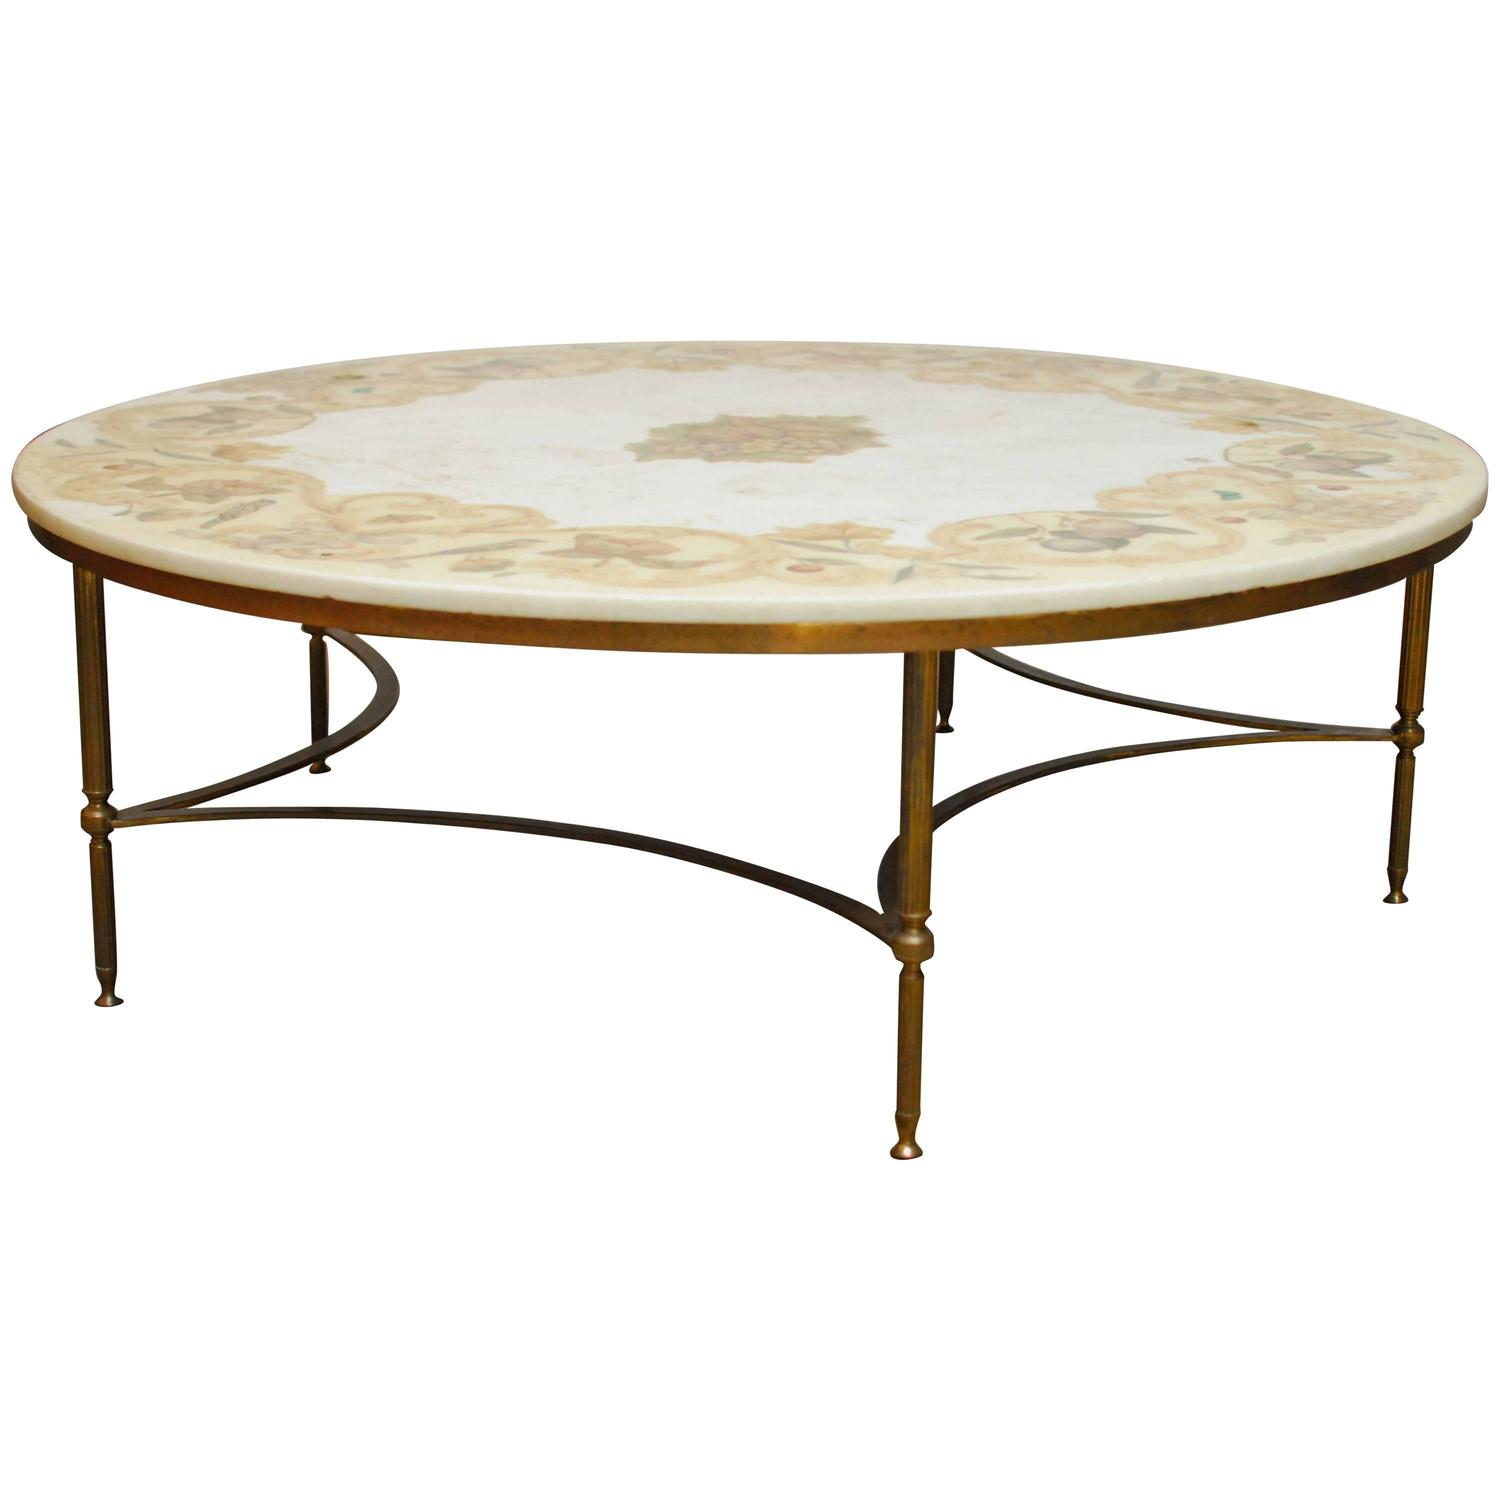 Florentine marble and brass round cocktail coffee table at 1stdibs Round marble coffee tables